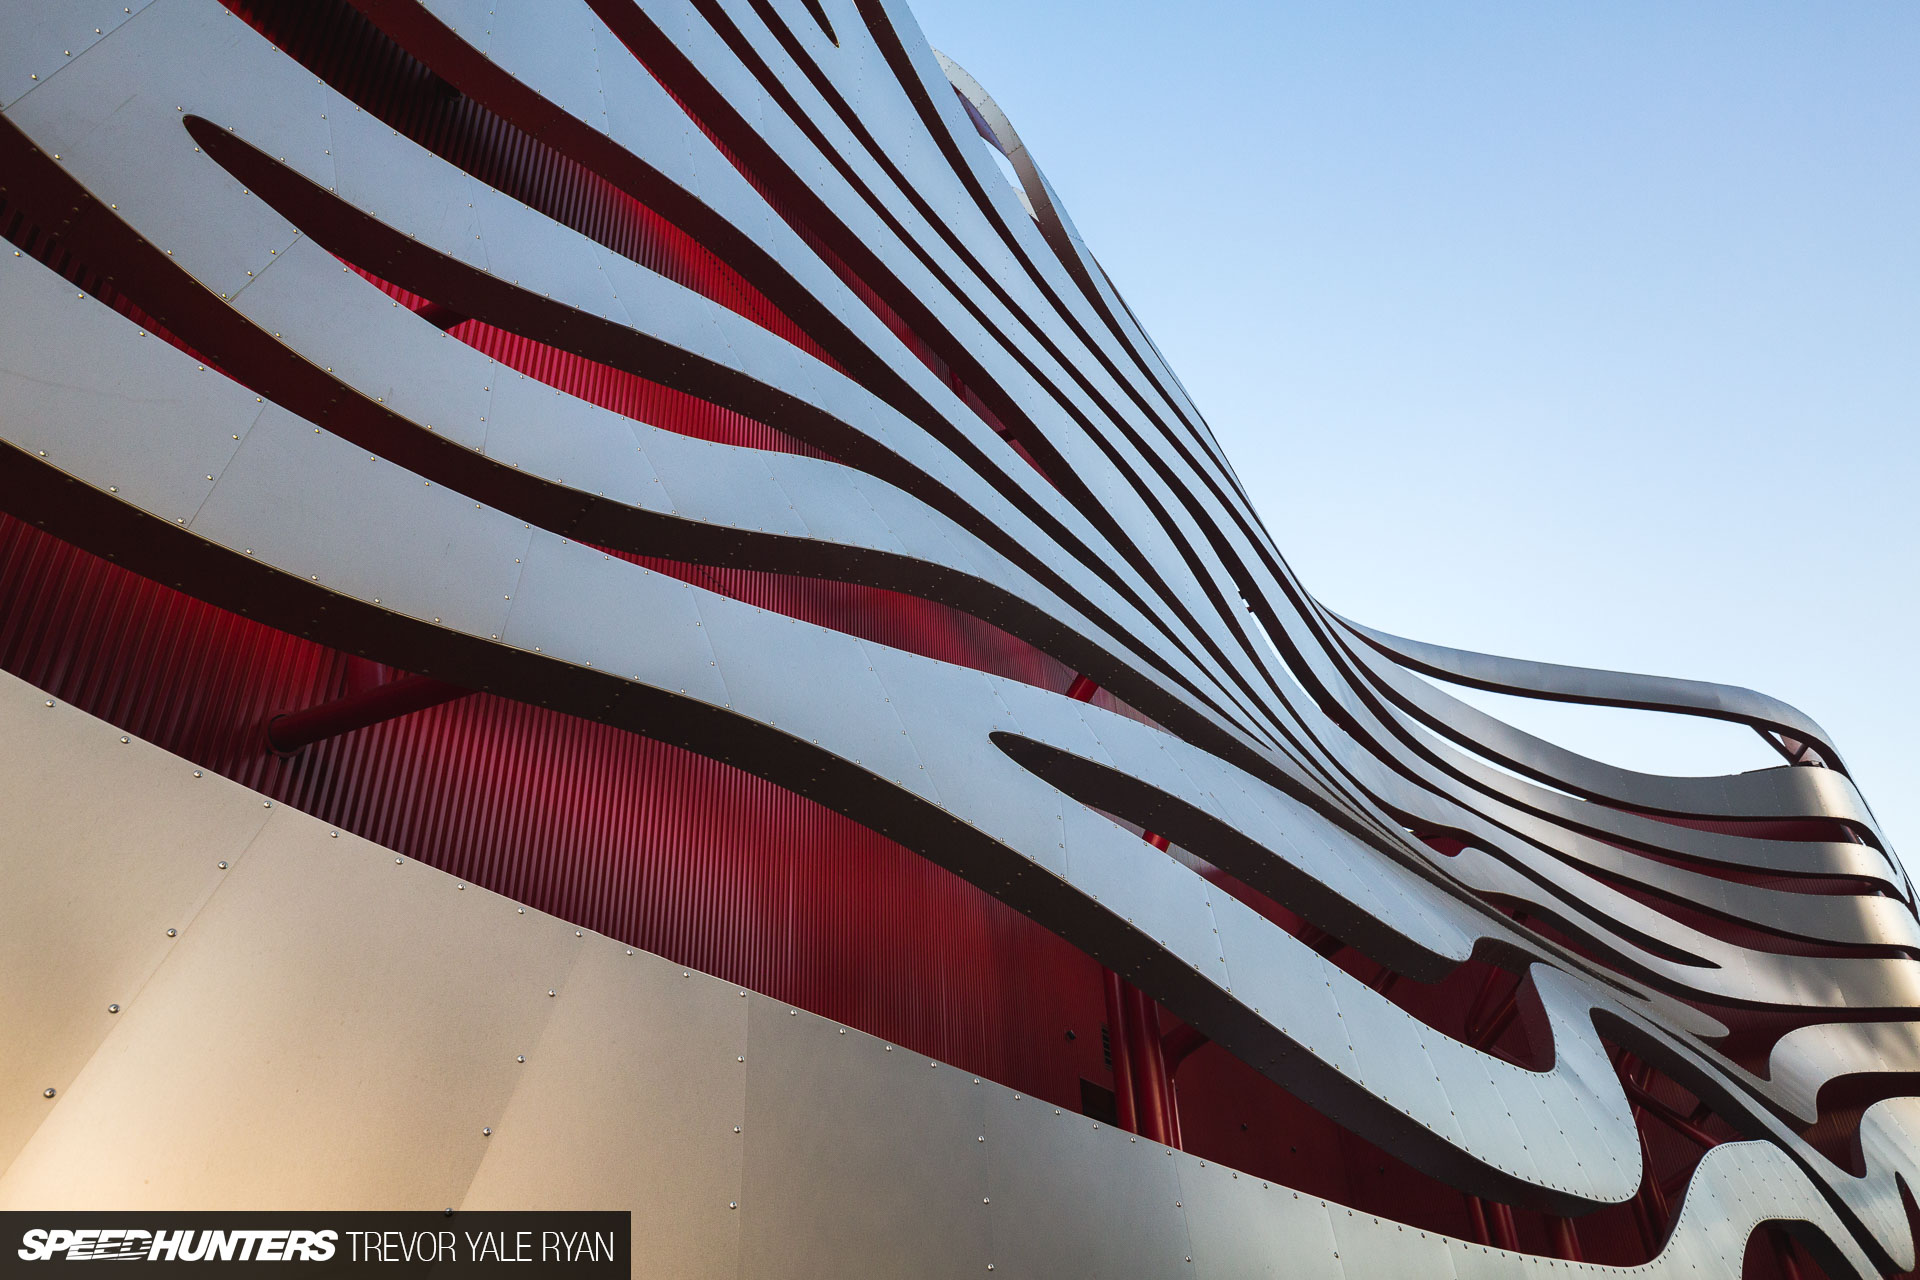 A Prelude To The Petersen, The Greatest Automotive Museum on Earth